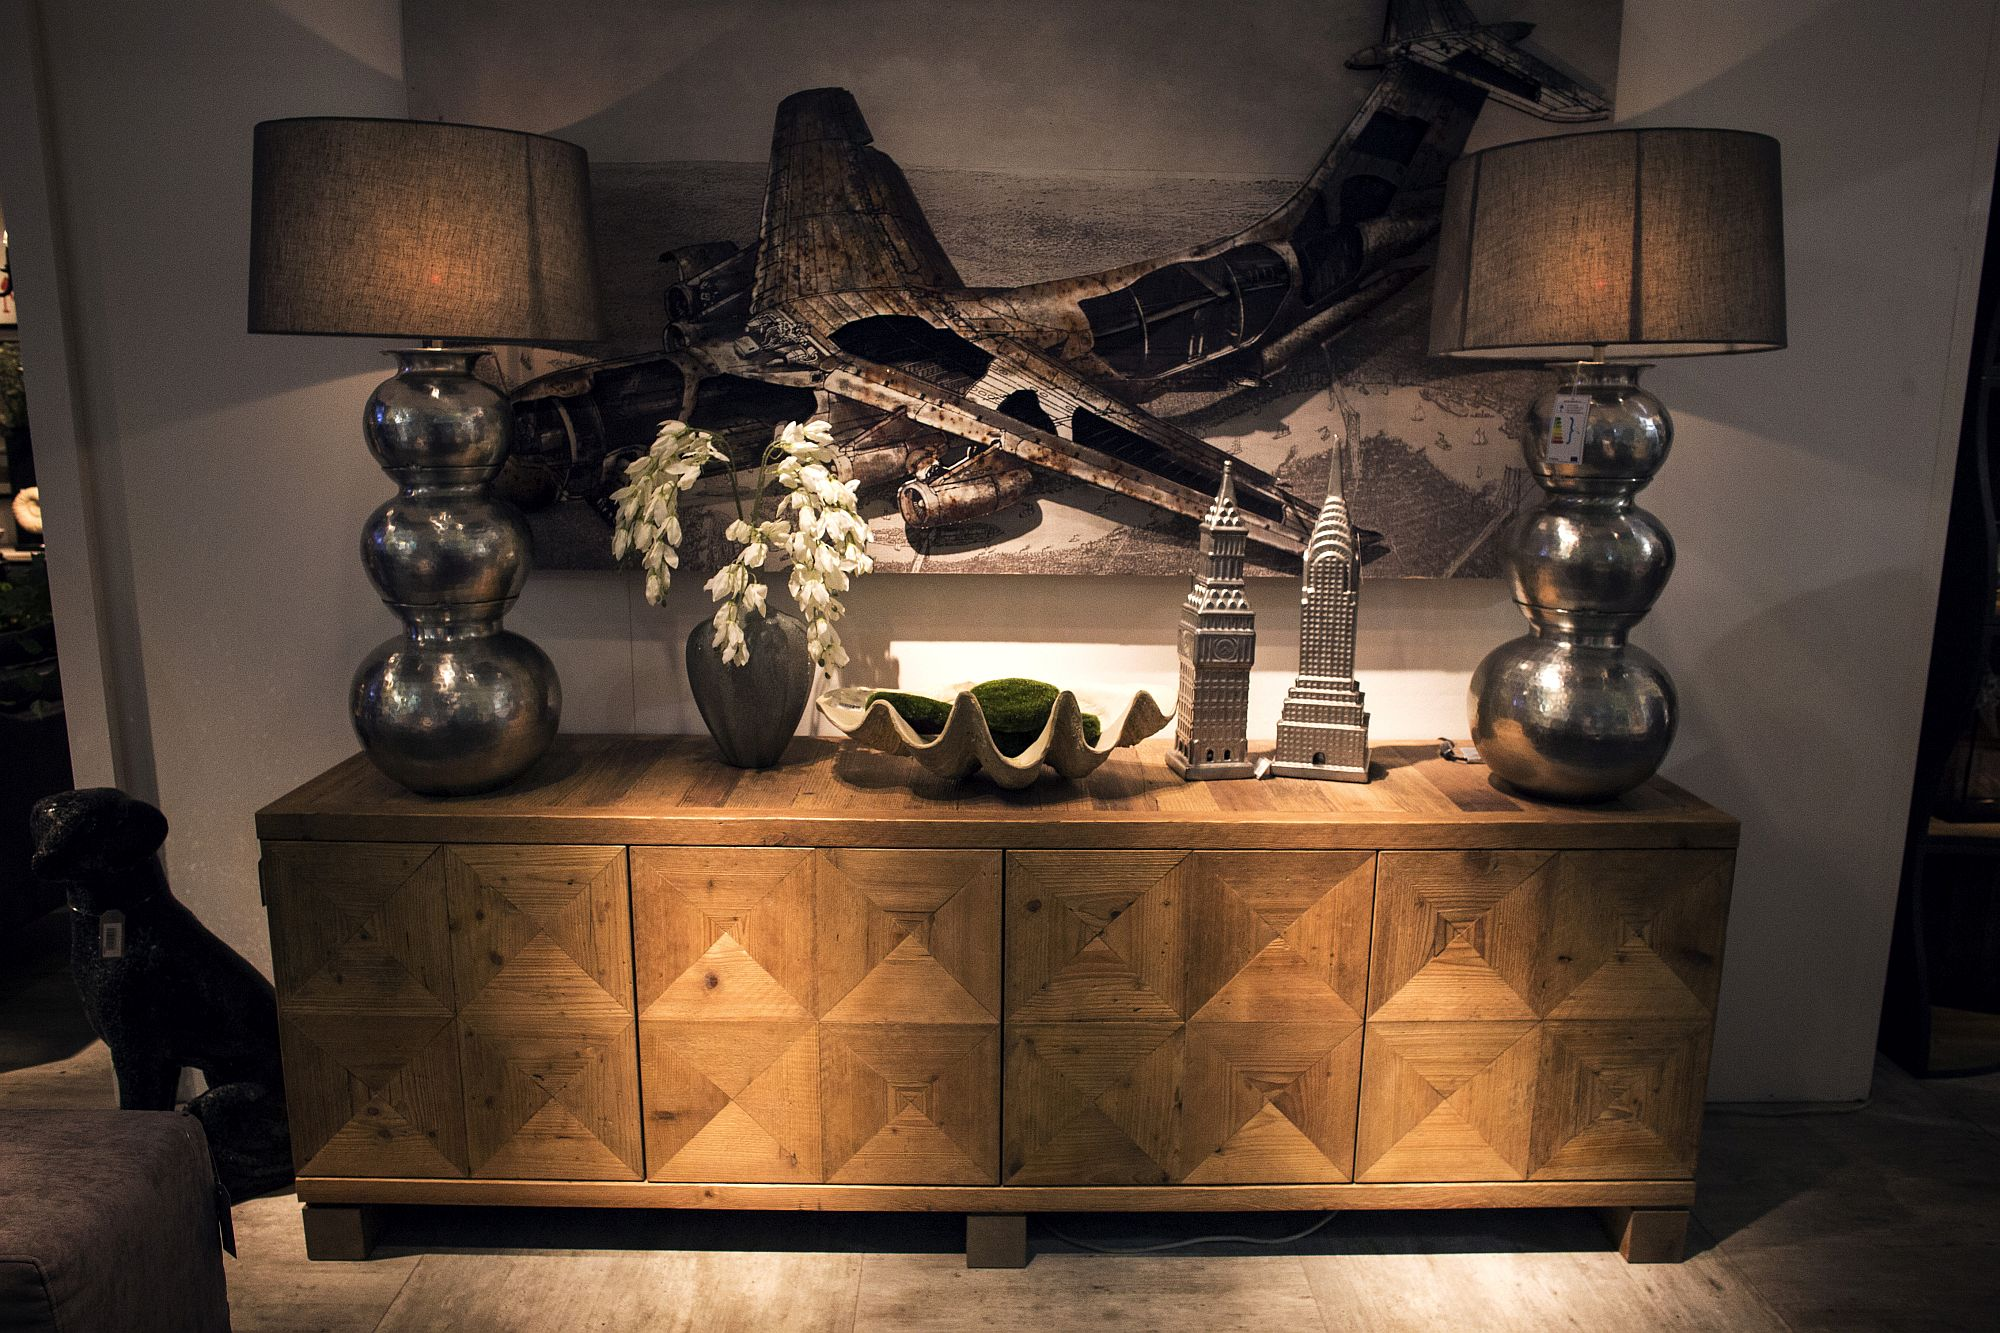 Wooden sideboard also brings pattern to the interior